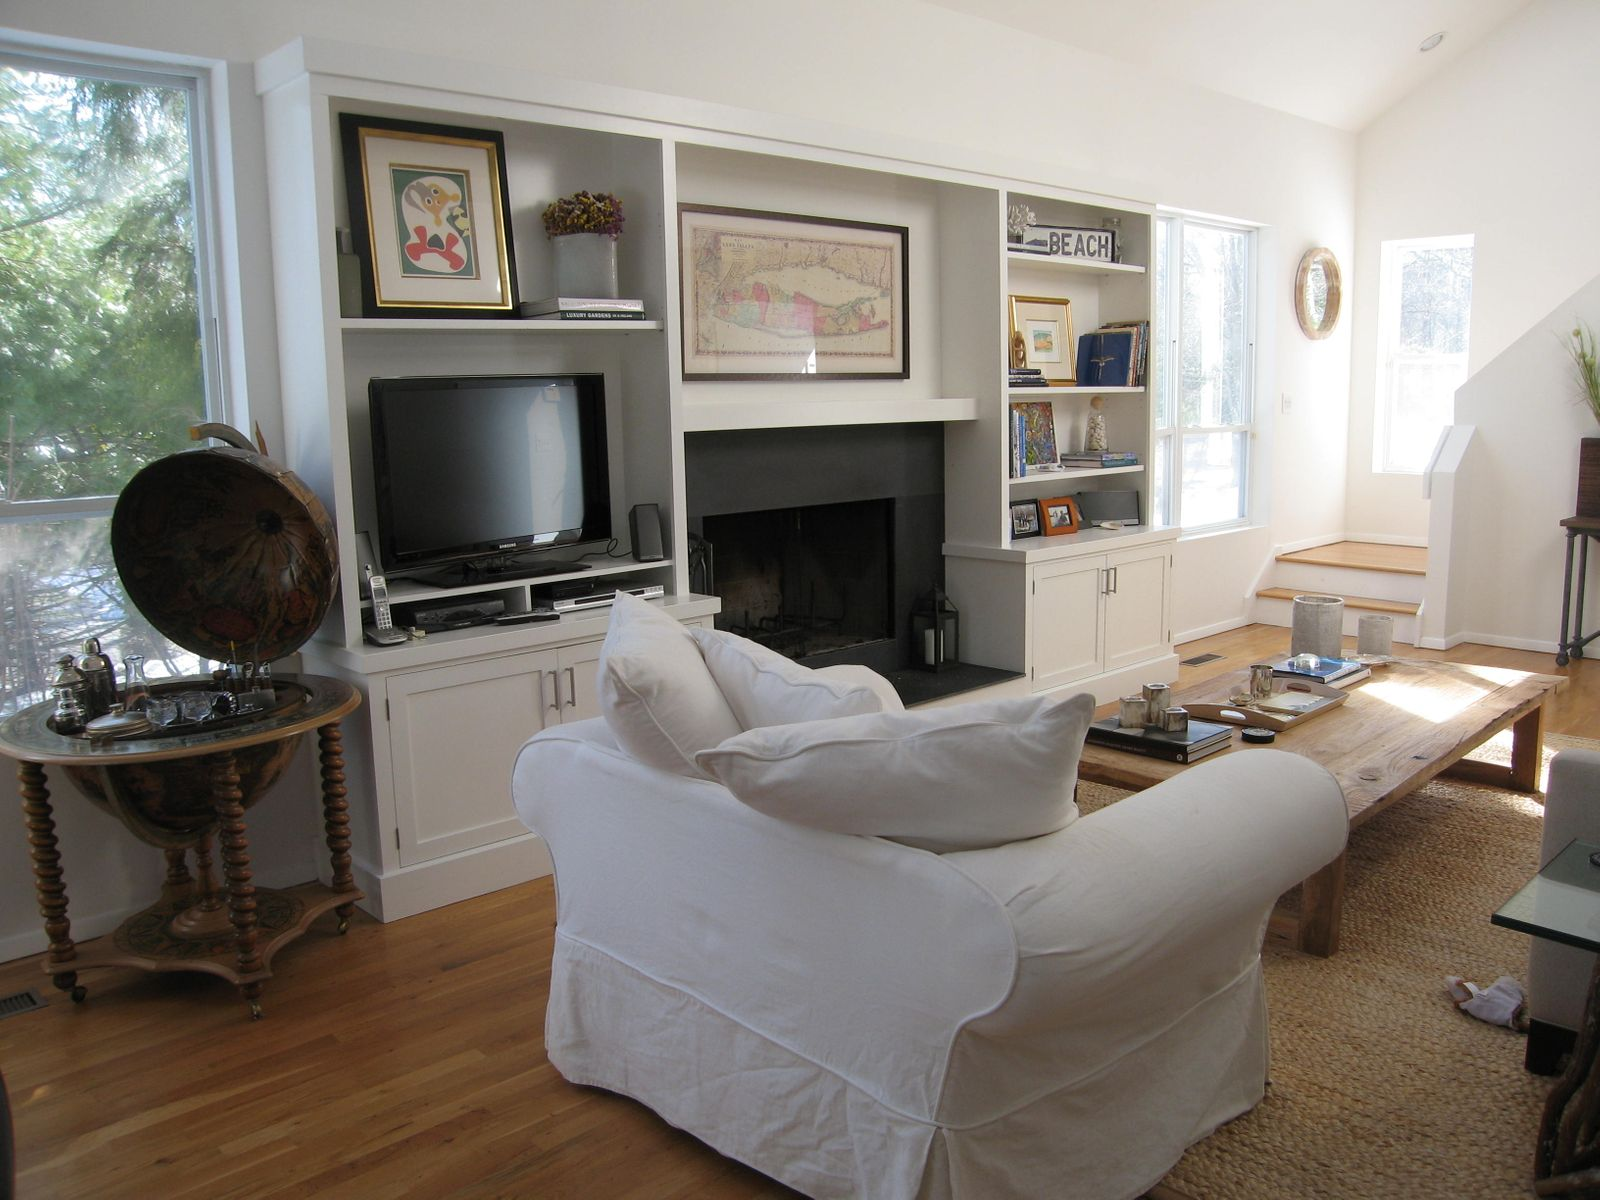 Chic Summer Rental close to the Village